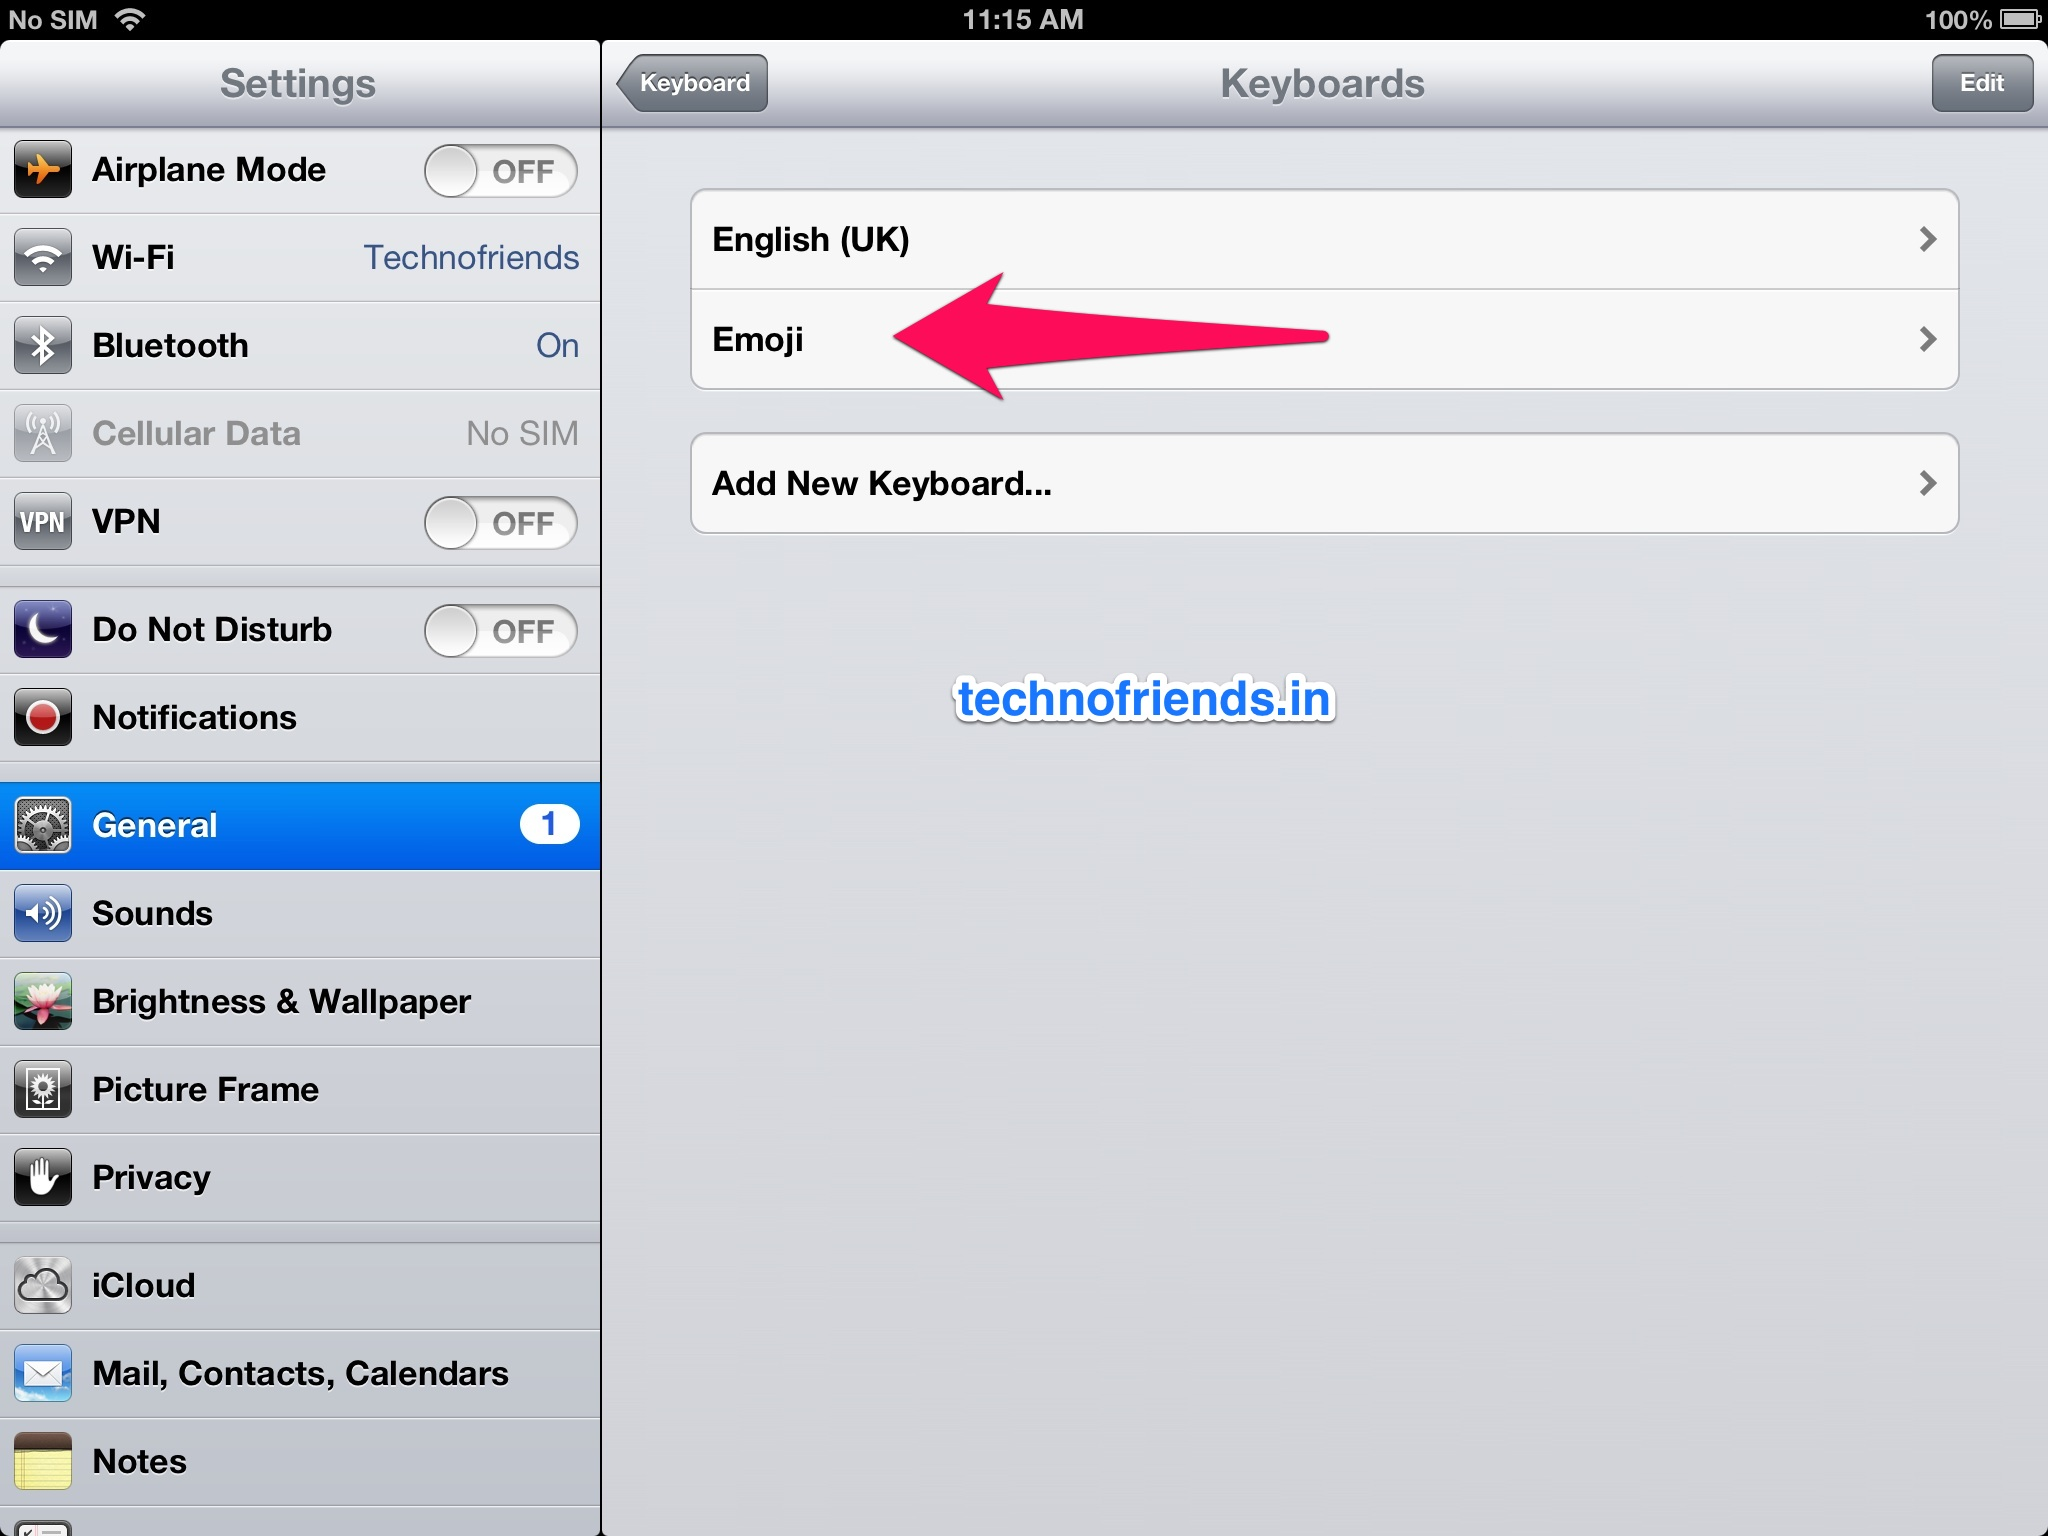 Adding an Emoji (Emoticon) Keyboard to your iOS Devices. (Step by Step Instructions)